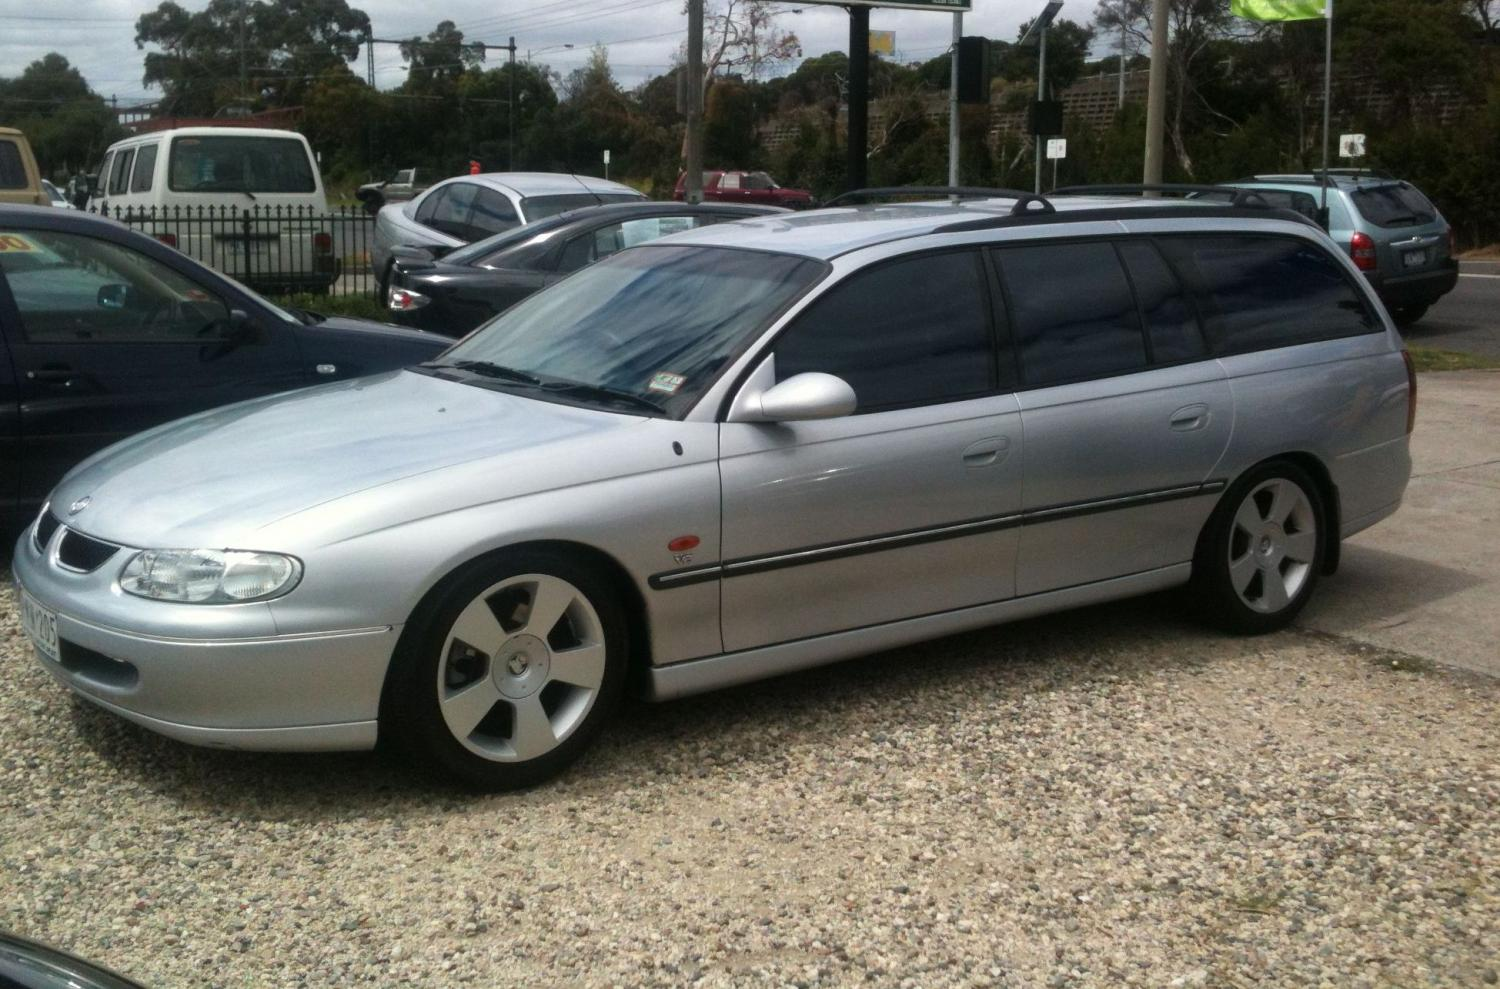 holden commodore wagon (vt) 2007 models #6